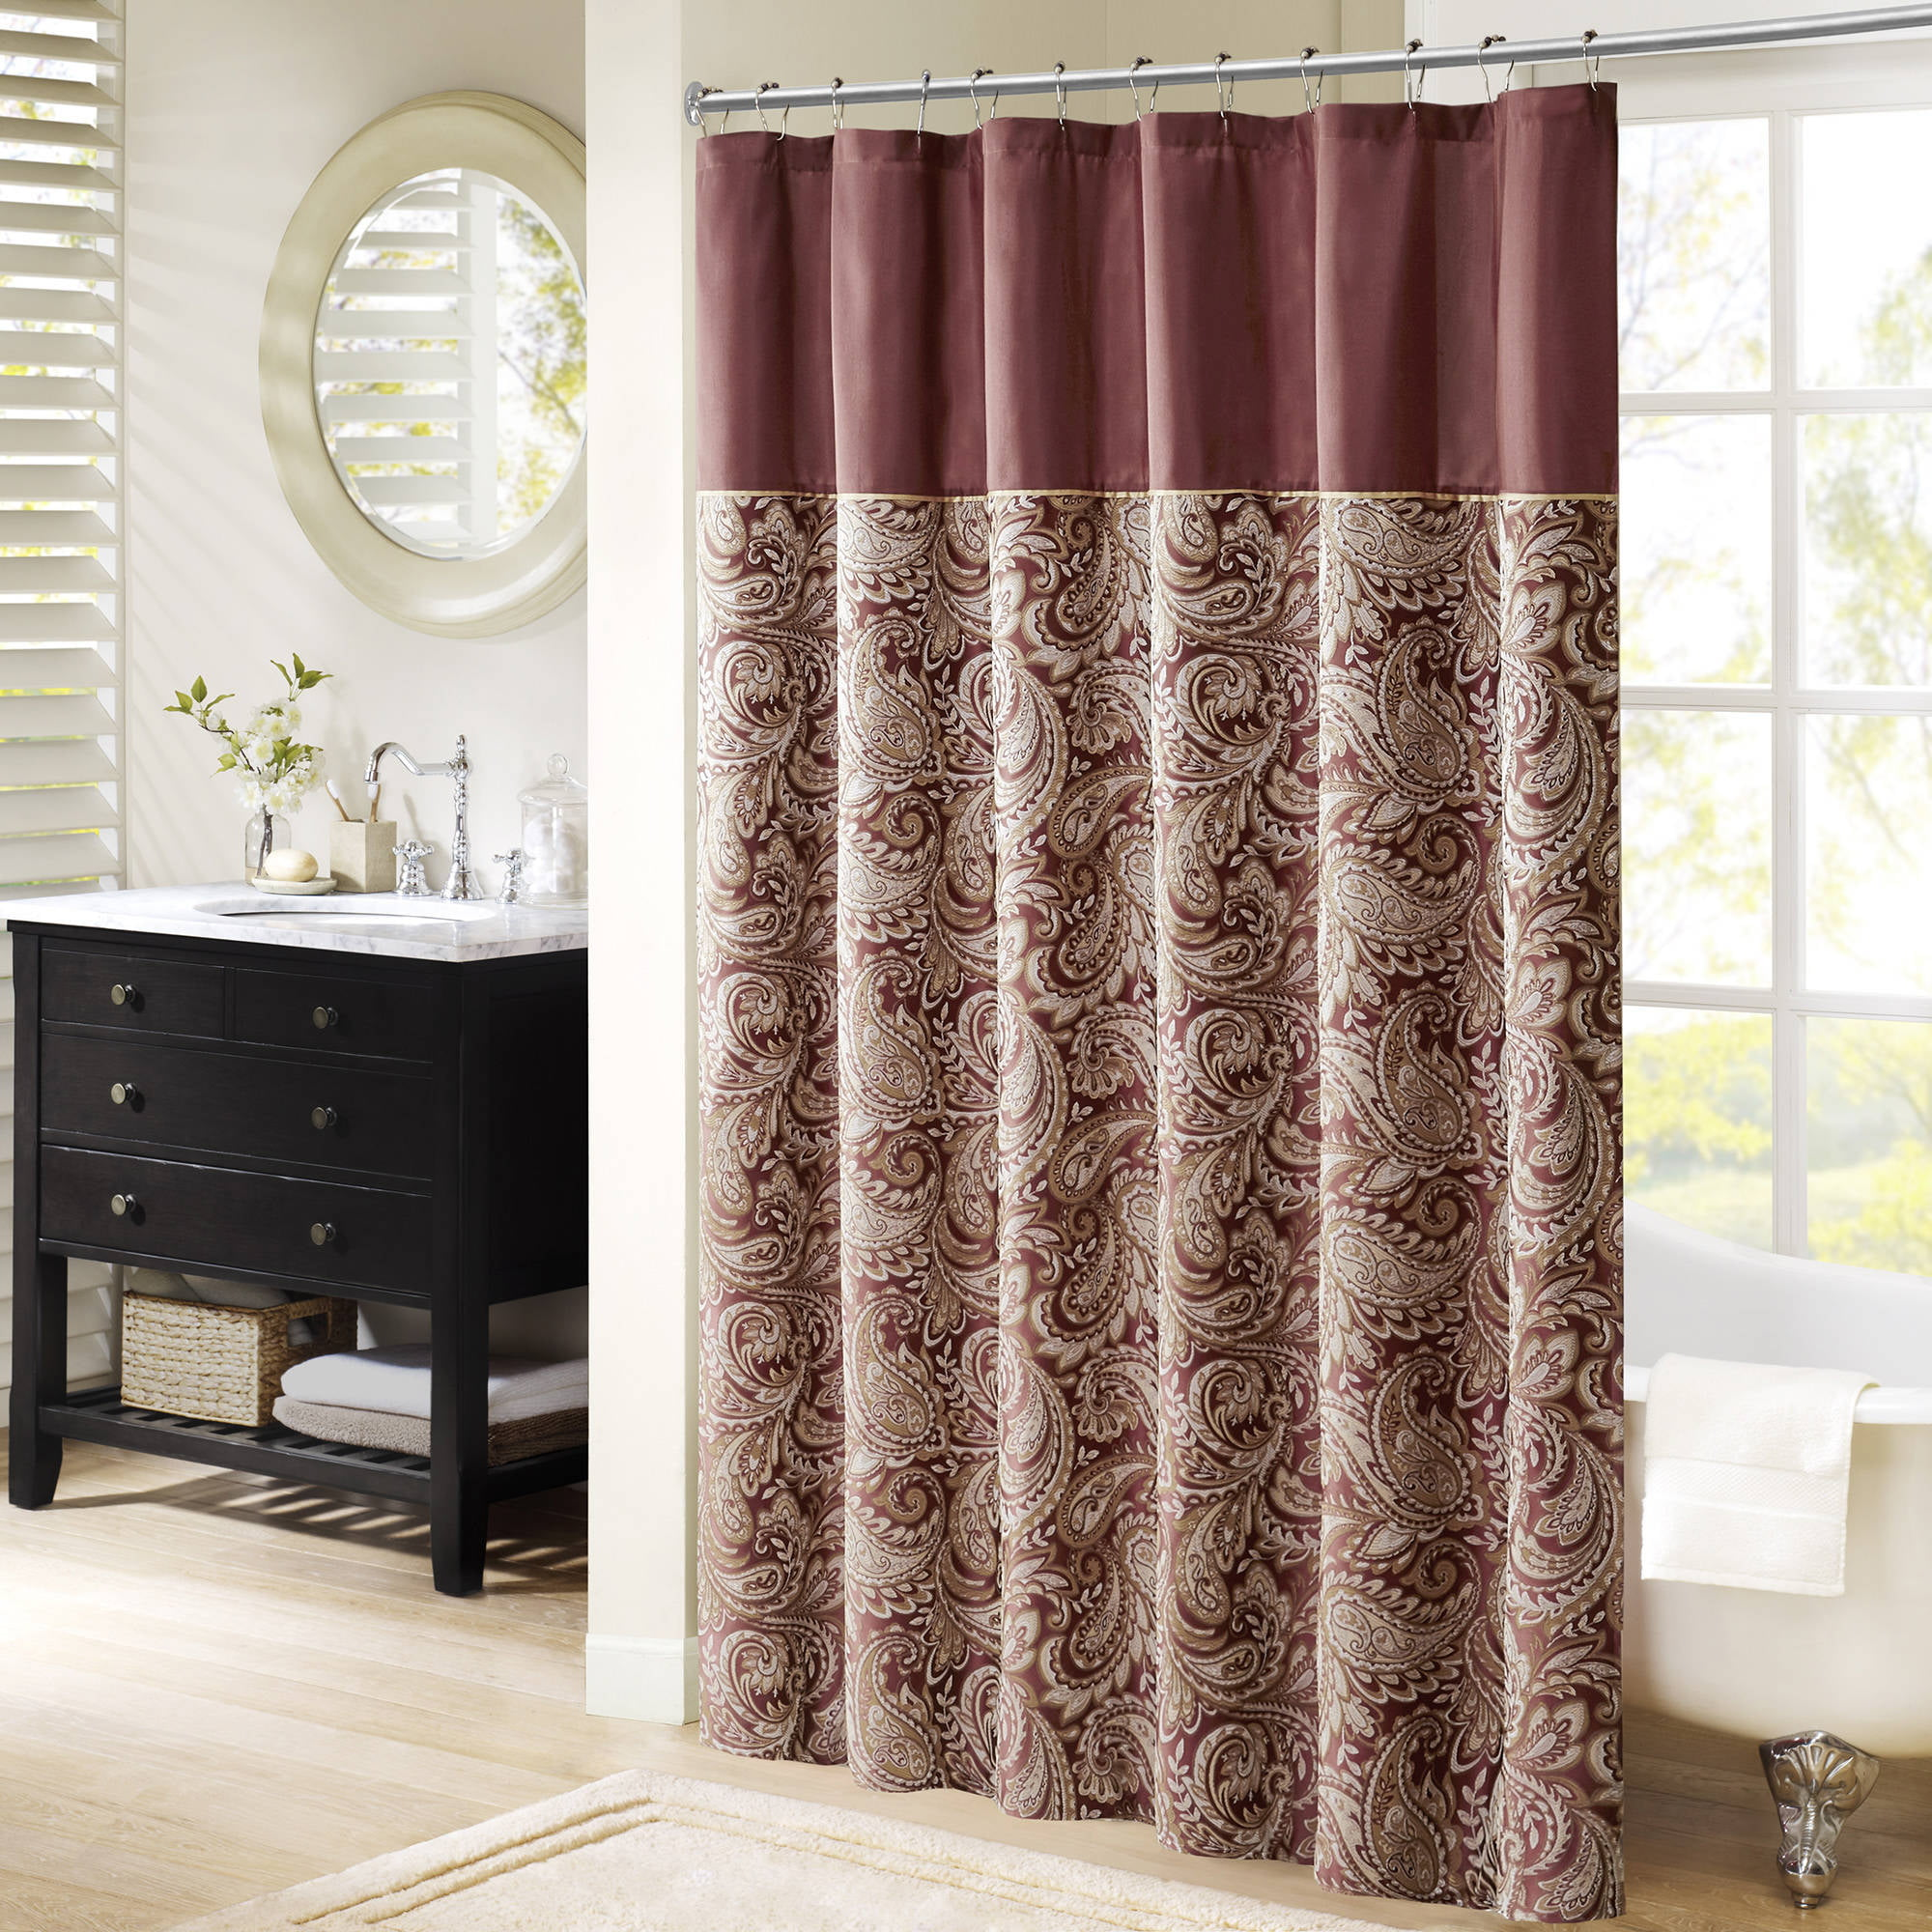 shower curtains - walmart - walmart